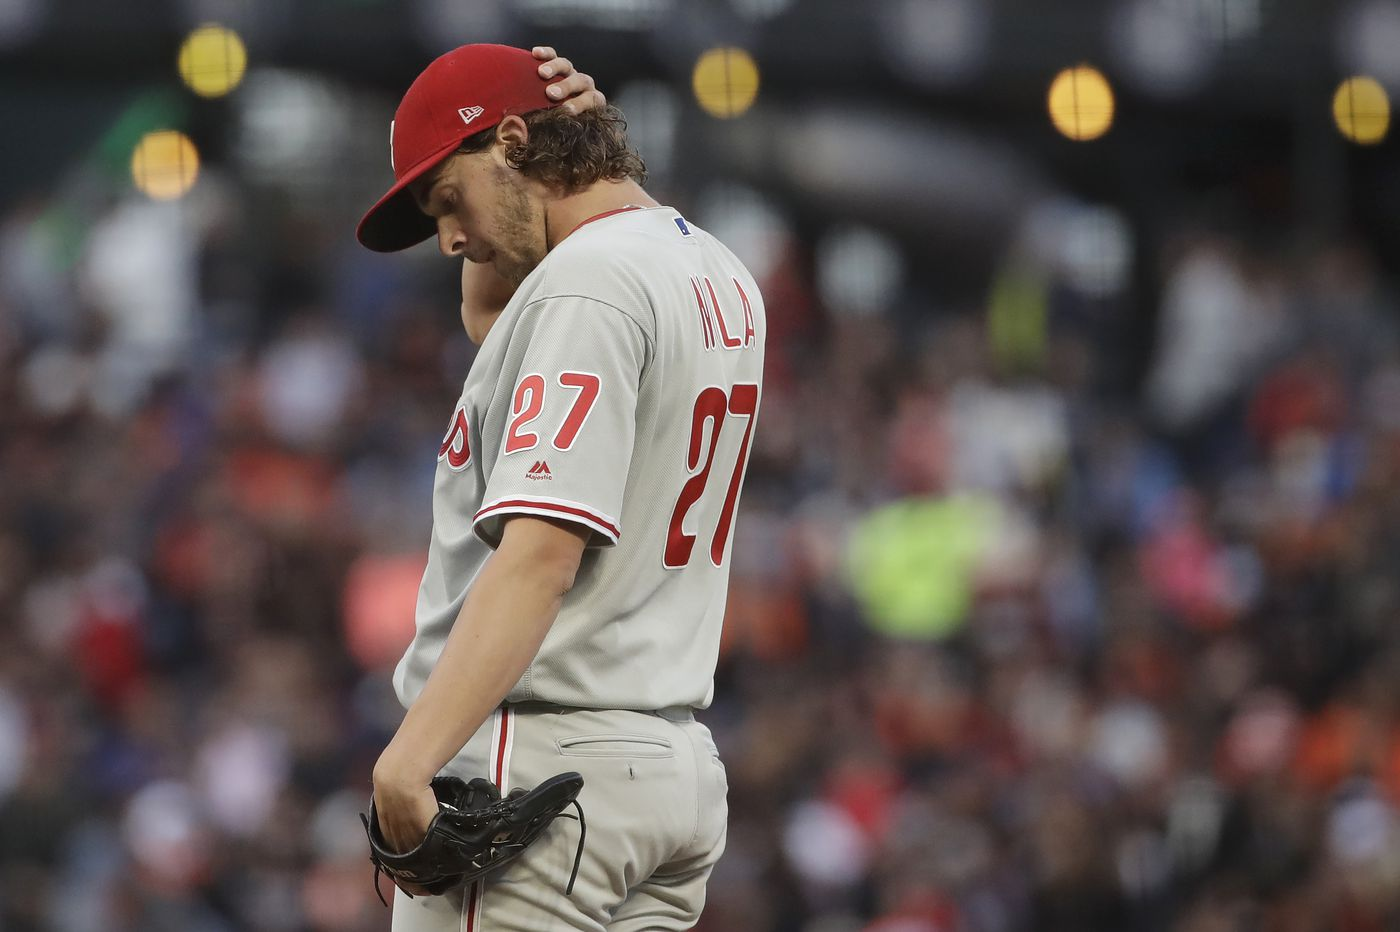 Phillies held to one hit by Giants in 5-0 loss, fall out of wild-card spot